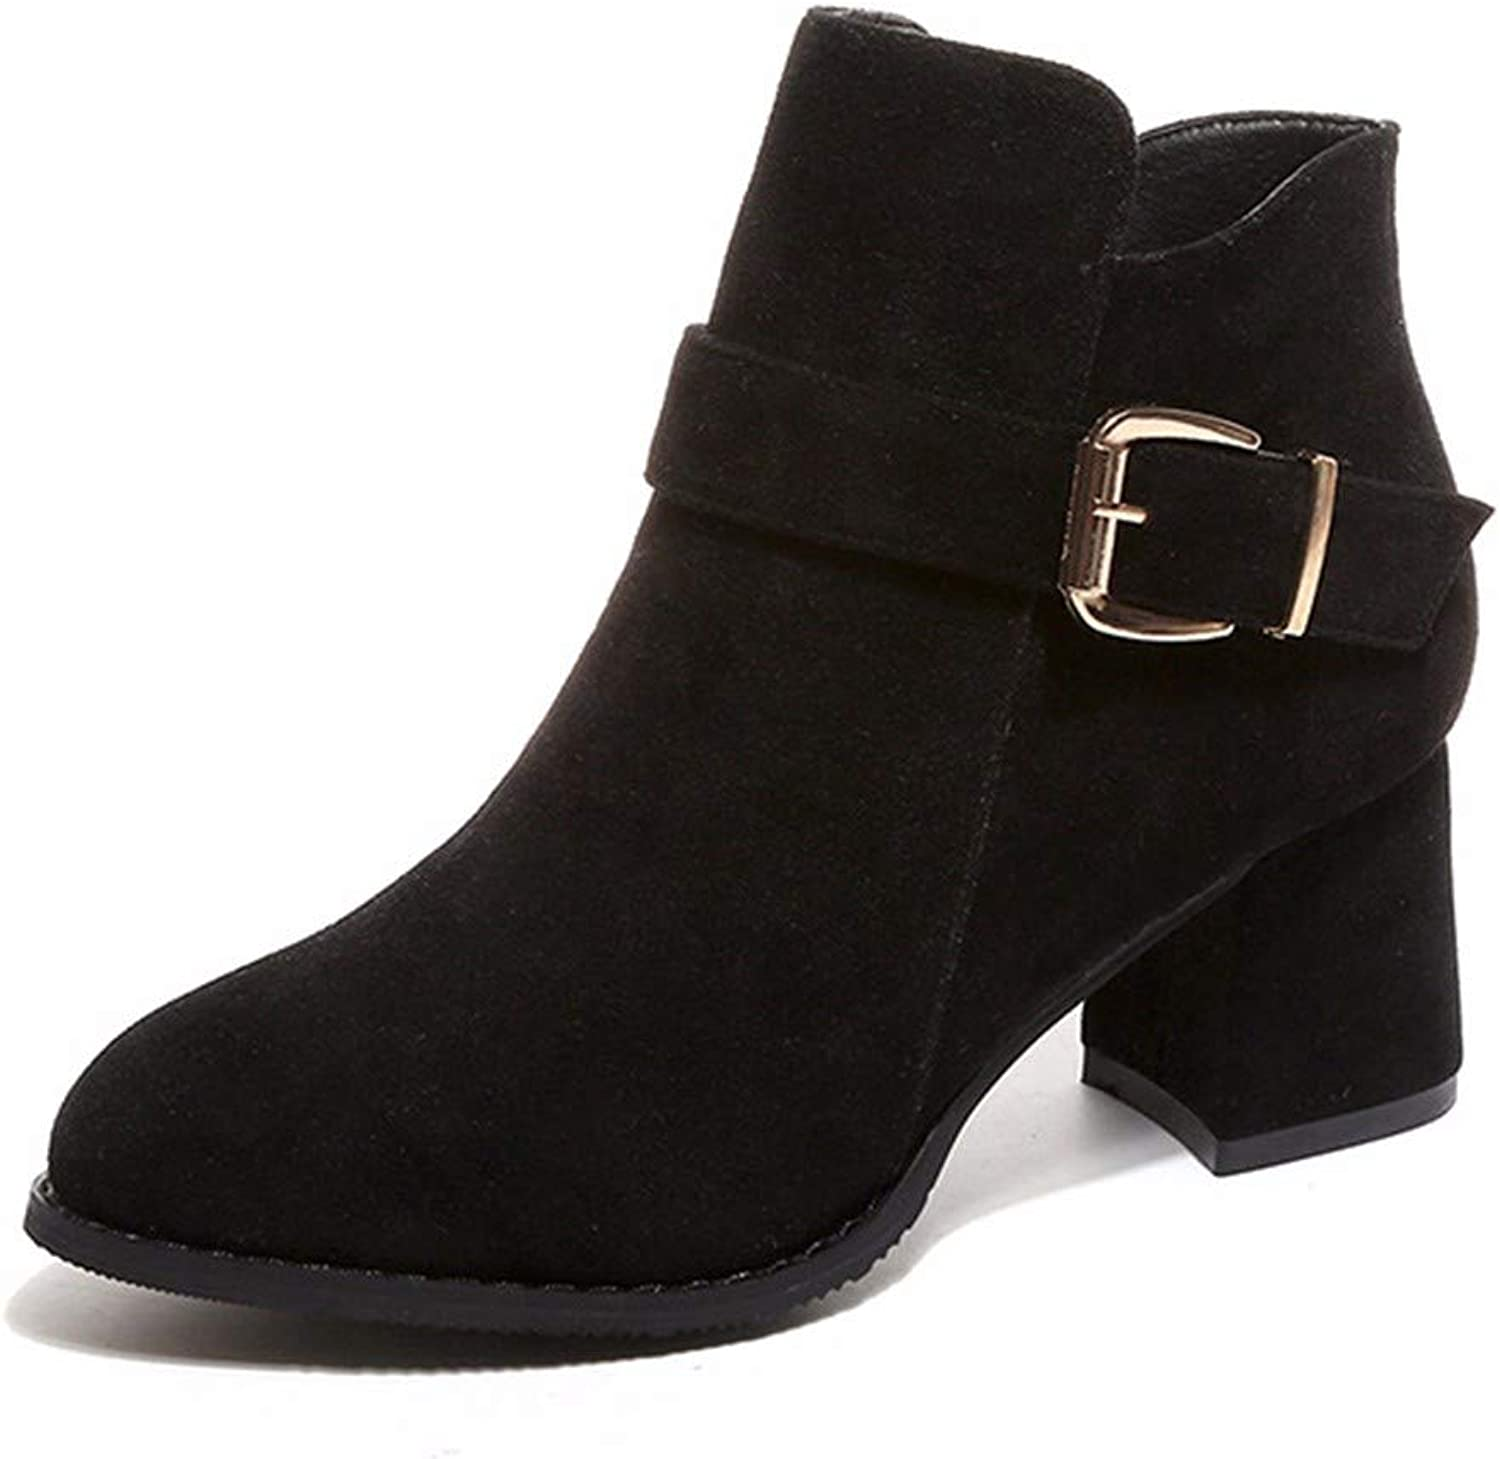 QPGGP-boots Side Zipper Boots, European and American Pointy Suede Martin Boots, Women's Heel and Boots Side Zippers.